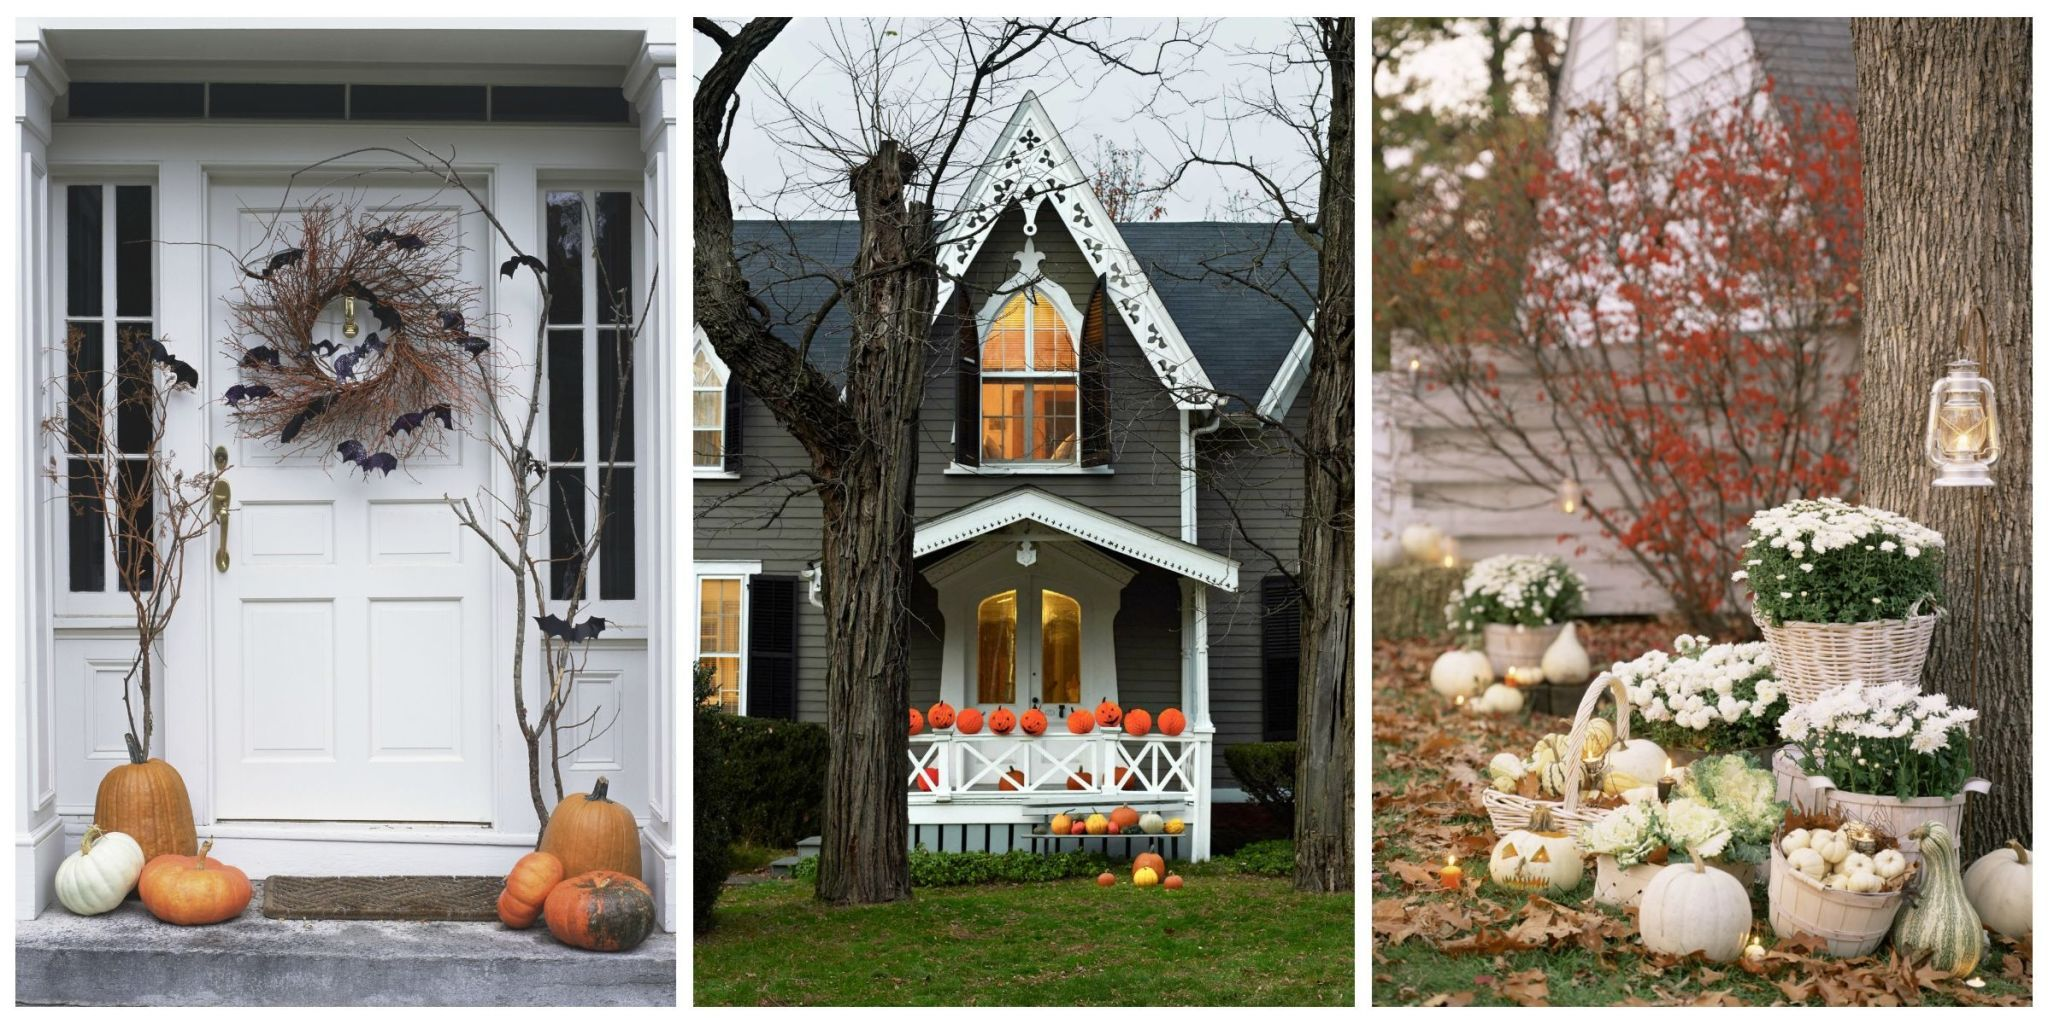 These Are The Wickedest Ways To Transform The Outside Of Your Home For  Halloween.